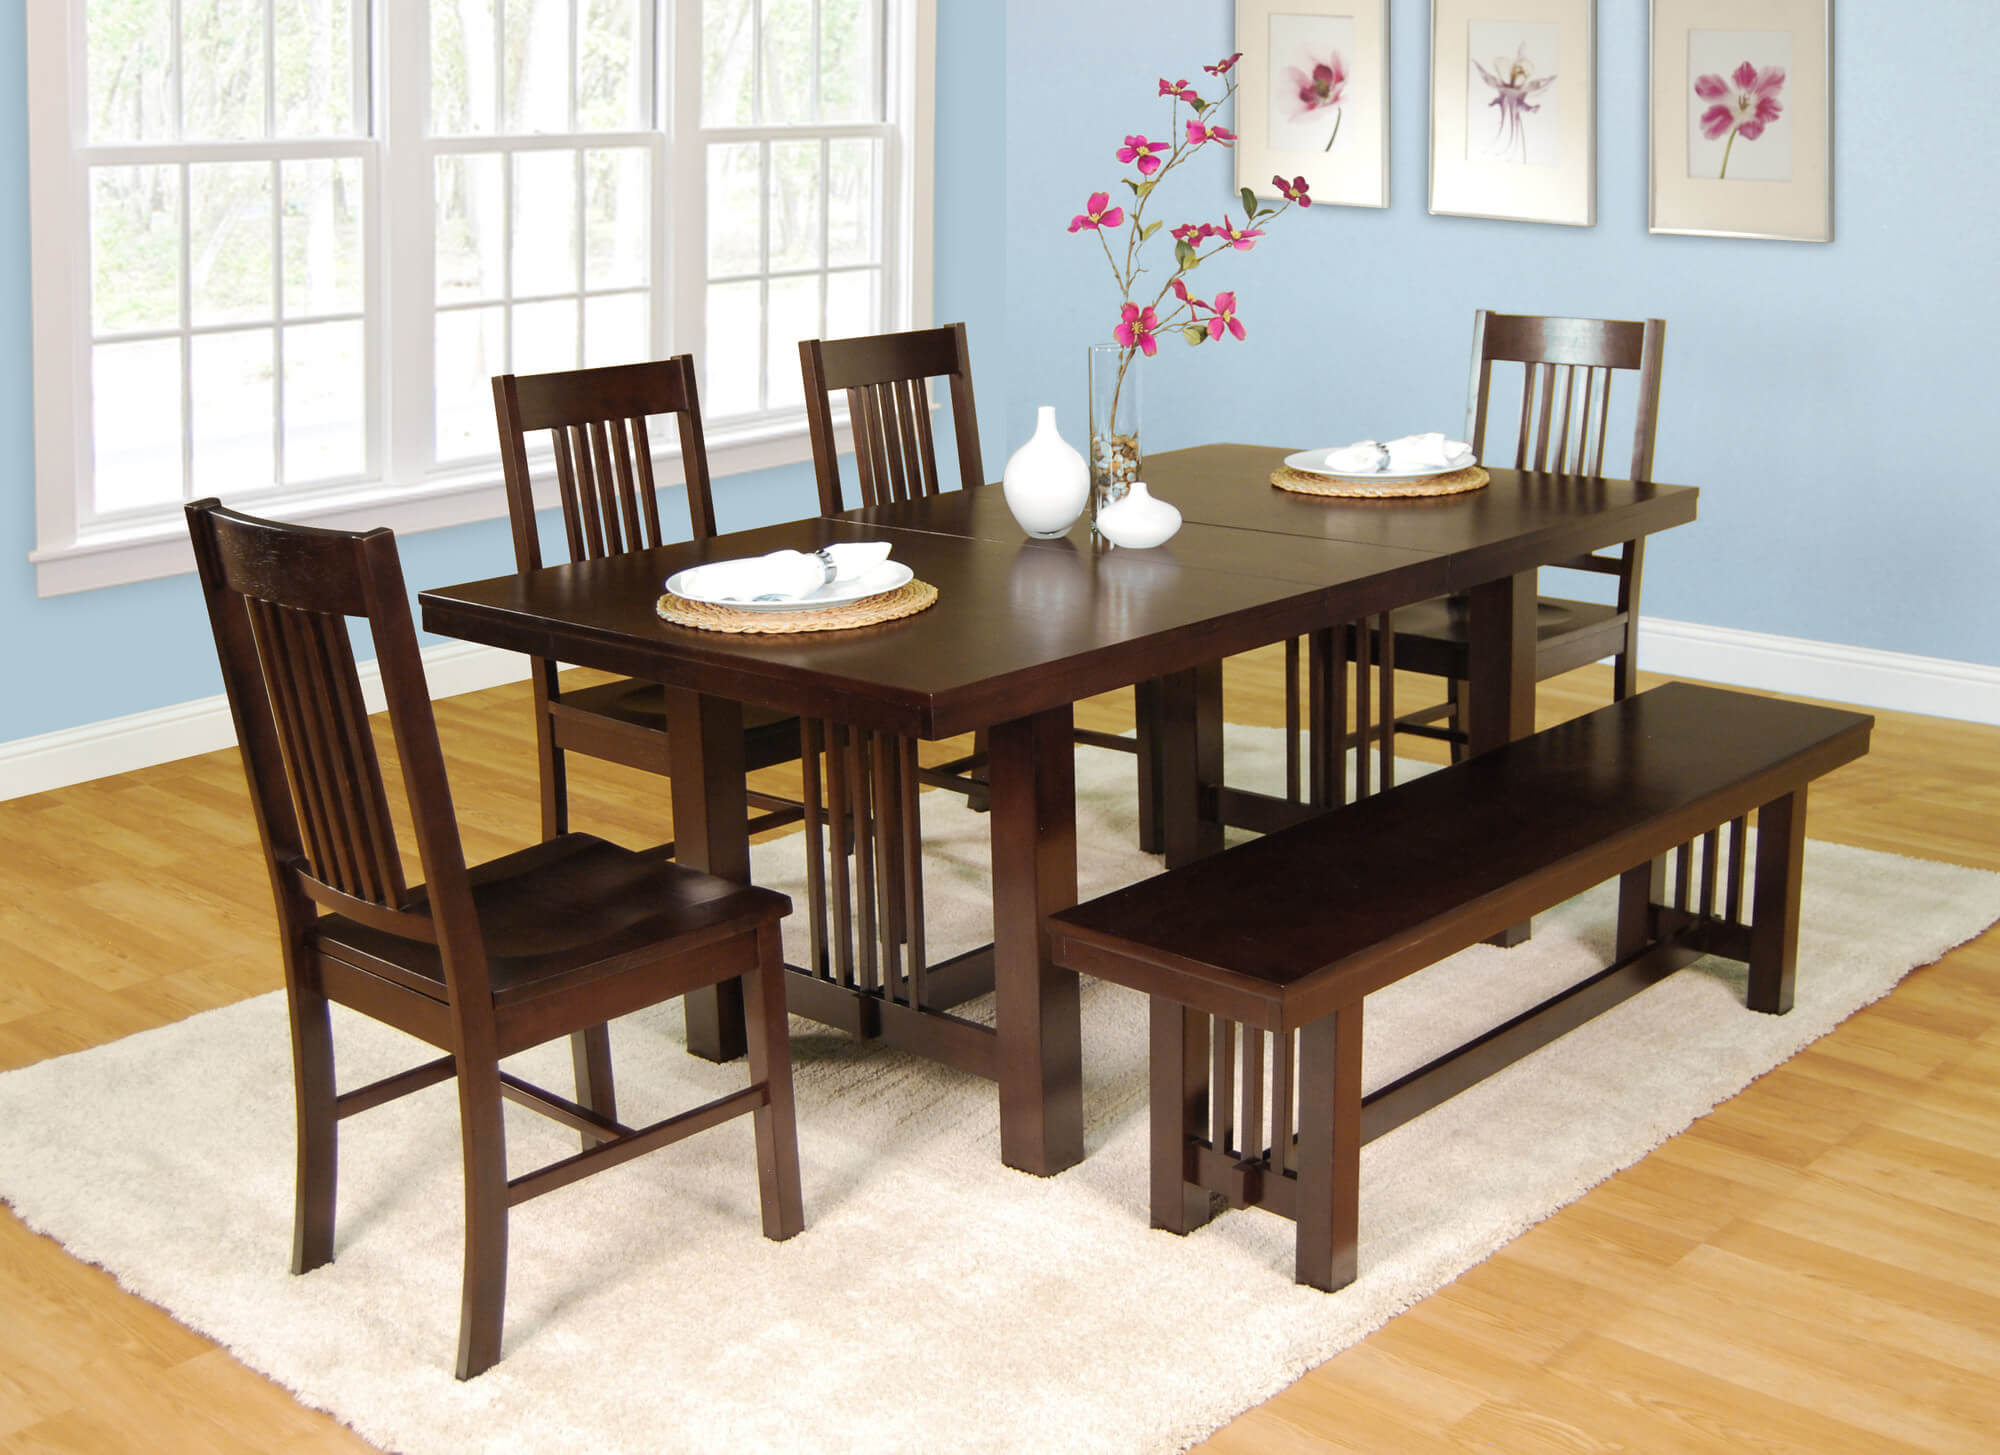 new room table dorm set kitchen furniture pc dining small round nonbranded pin chairs spaces